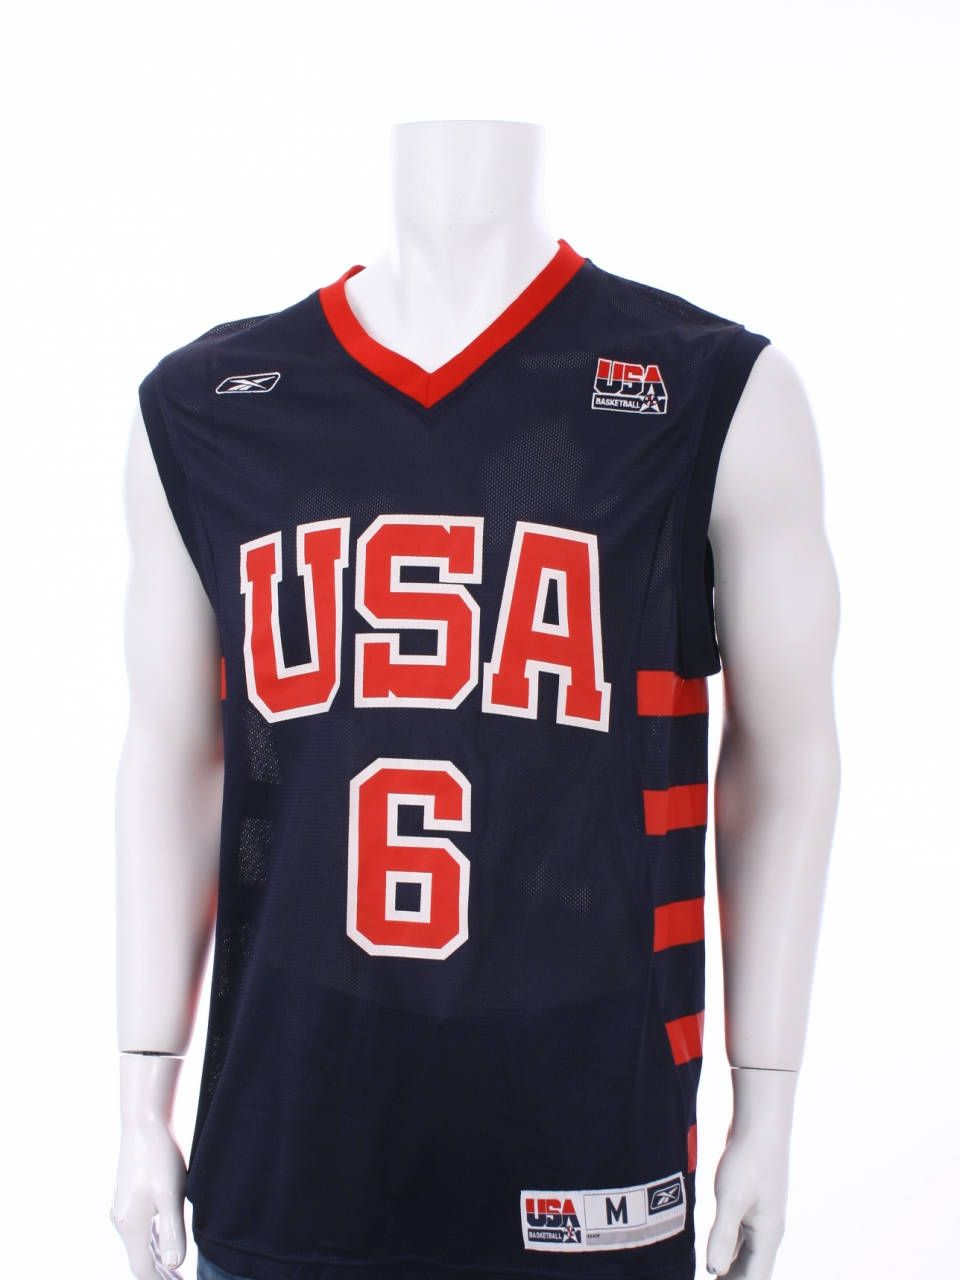 a393aa8faa7 Vintage Tracy McGrady  6 USA Olympic Dream Team Basketball Reebok Jersey  Size M by VapeoVintage on Etsy